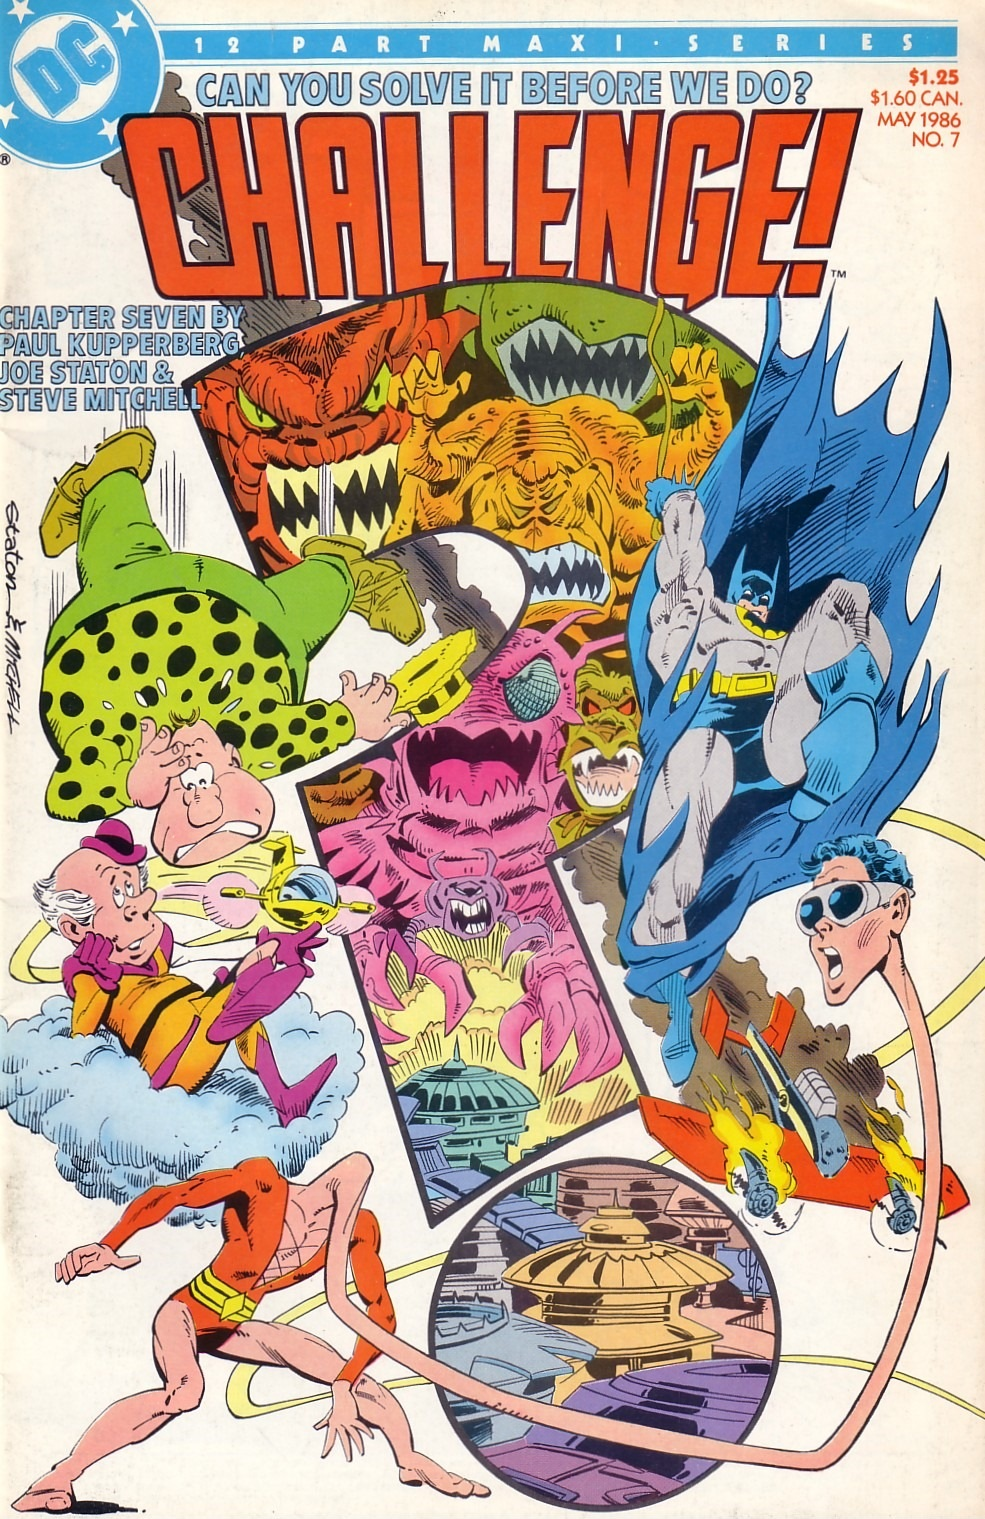 DC Challenge (1985) #7, cover penciled by Joe Staton & inked by Steve Mitchell.